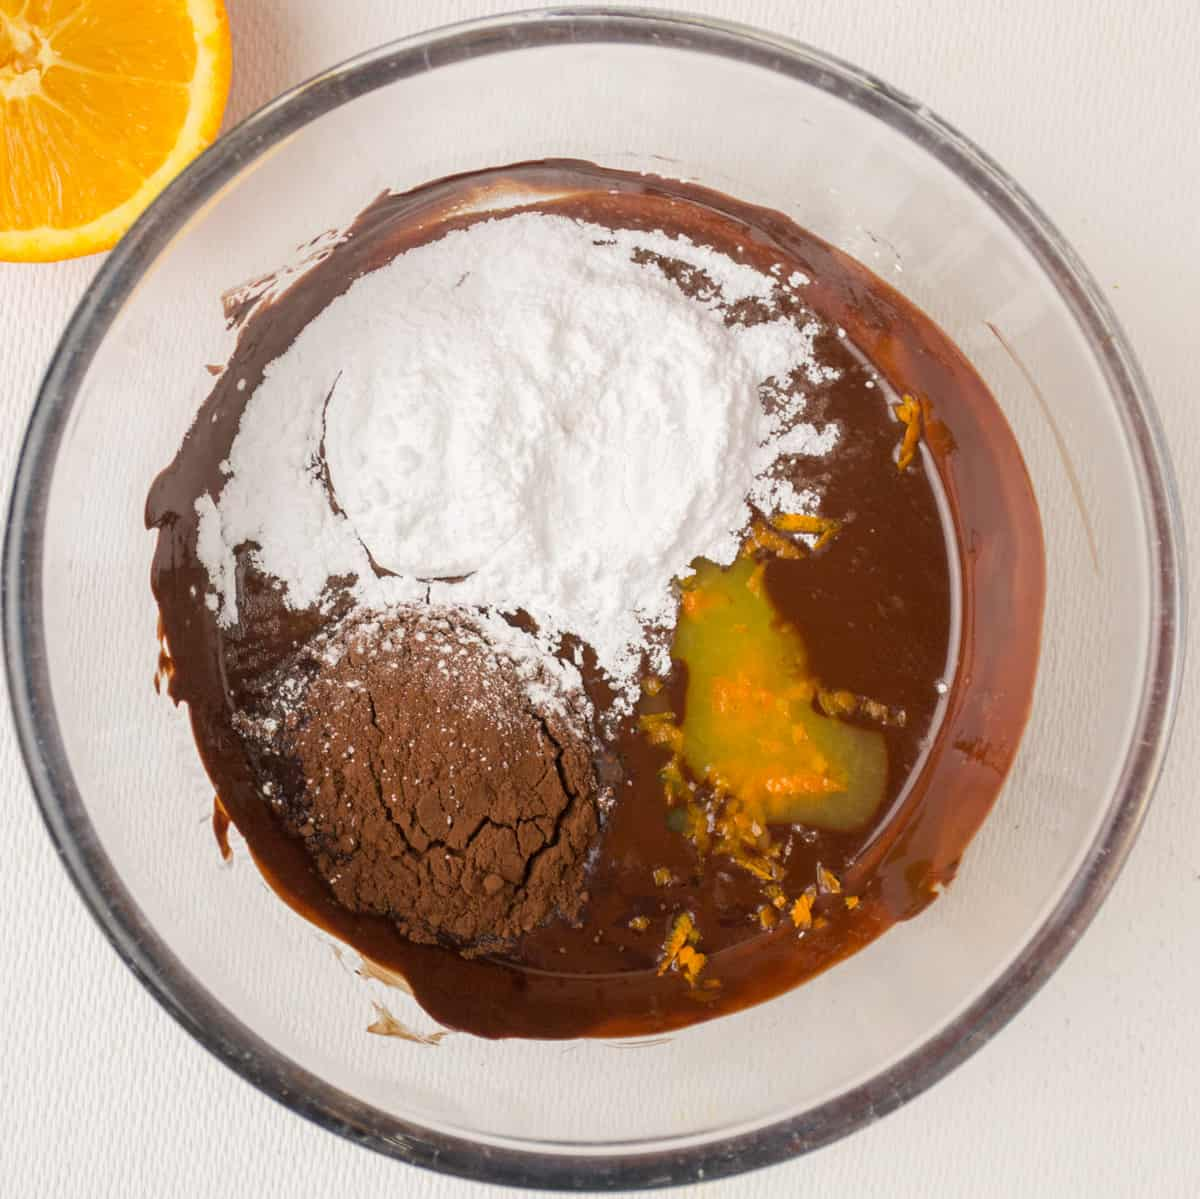 Adding sugar, cocoa, orange juice and zest to the chocolate mixture